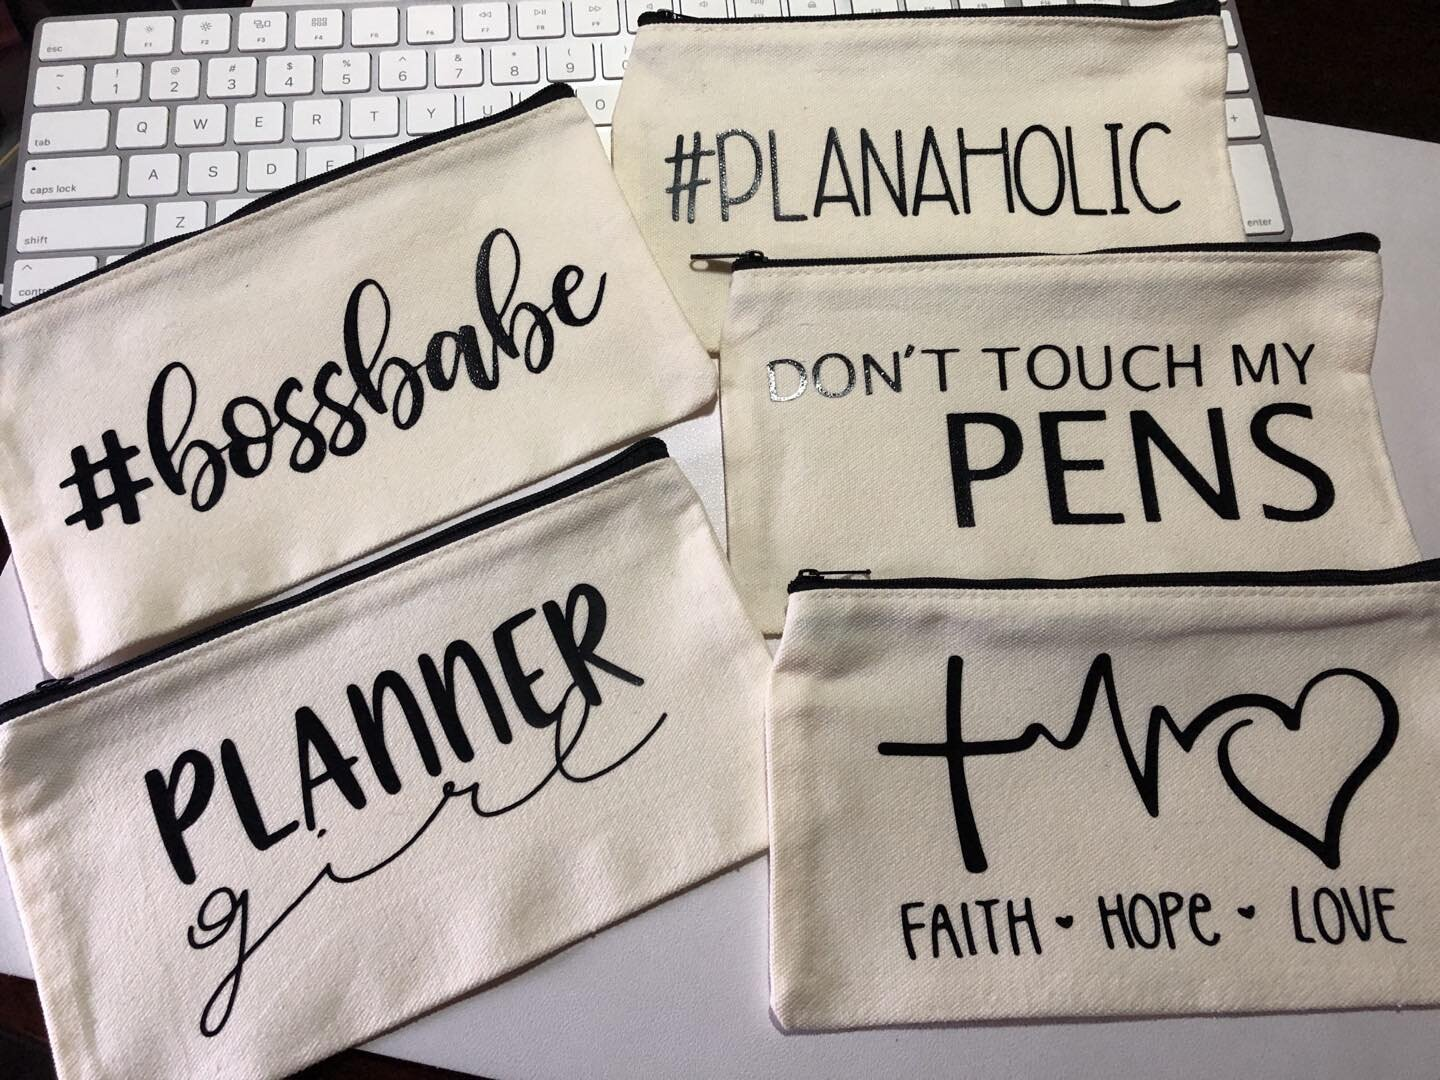 Coming Soon! These pretty babies will be available in my shop very soon so be in the lookout. . . . #penpouch #pens #plannergirl #bossbabe #pens #mildliners #planaholoc #faith #hope #love #bags #kraftyplanner